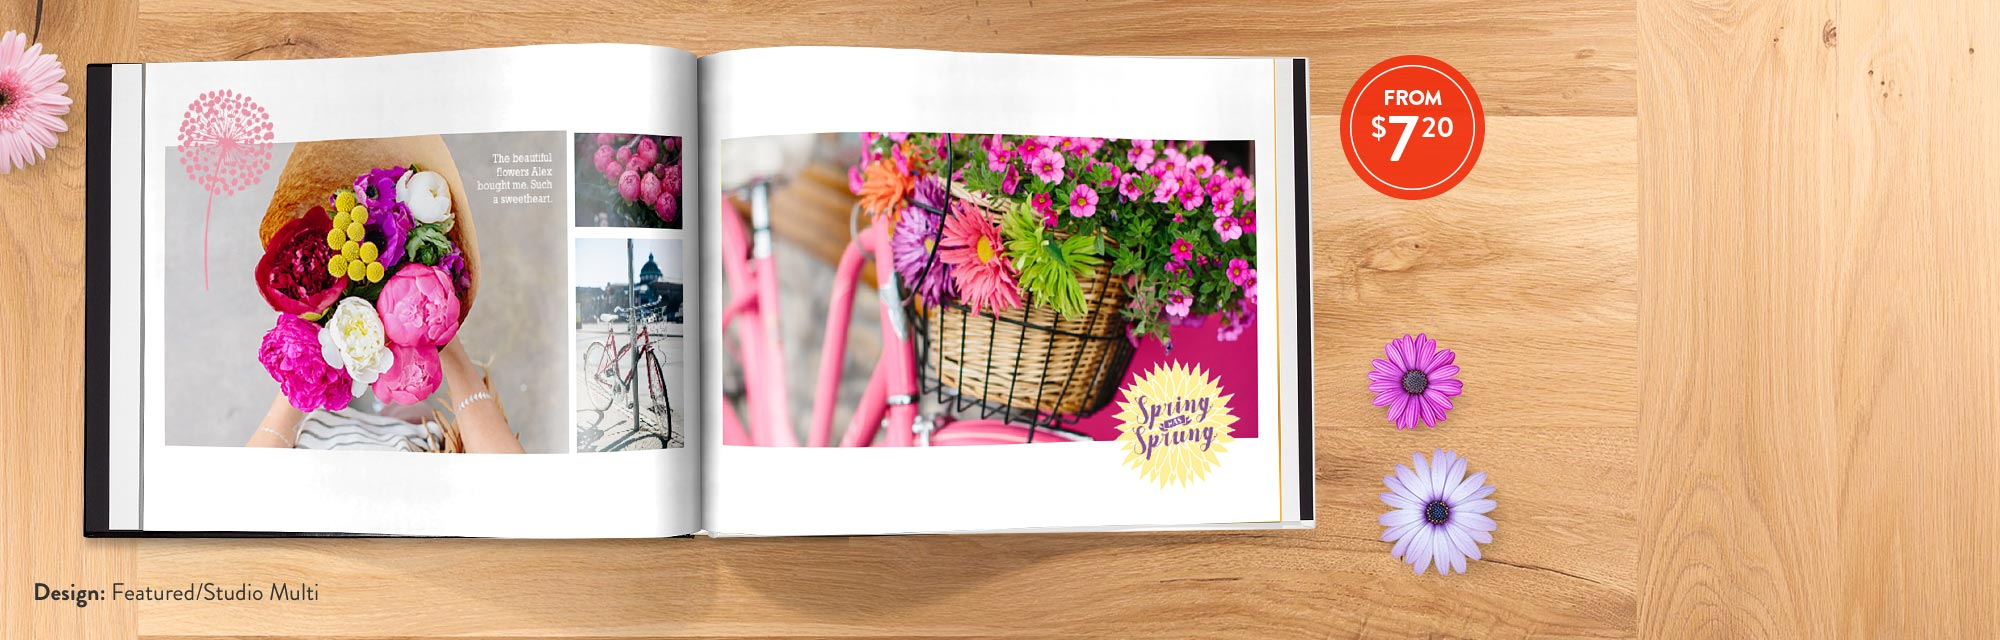 Our Top Picks : Save up to 66% on our most popular hardcover photo books.Offer ends 26/9View Terms & Conditions